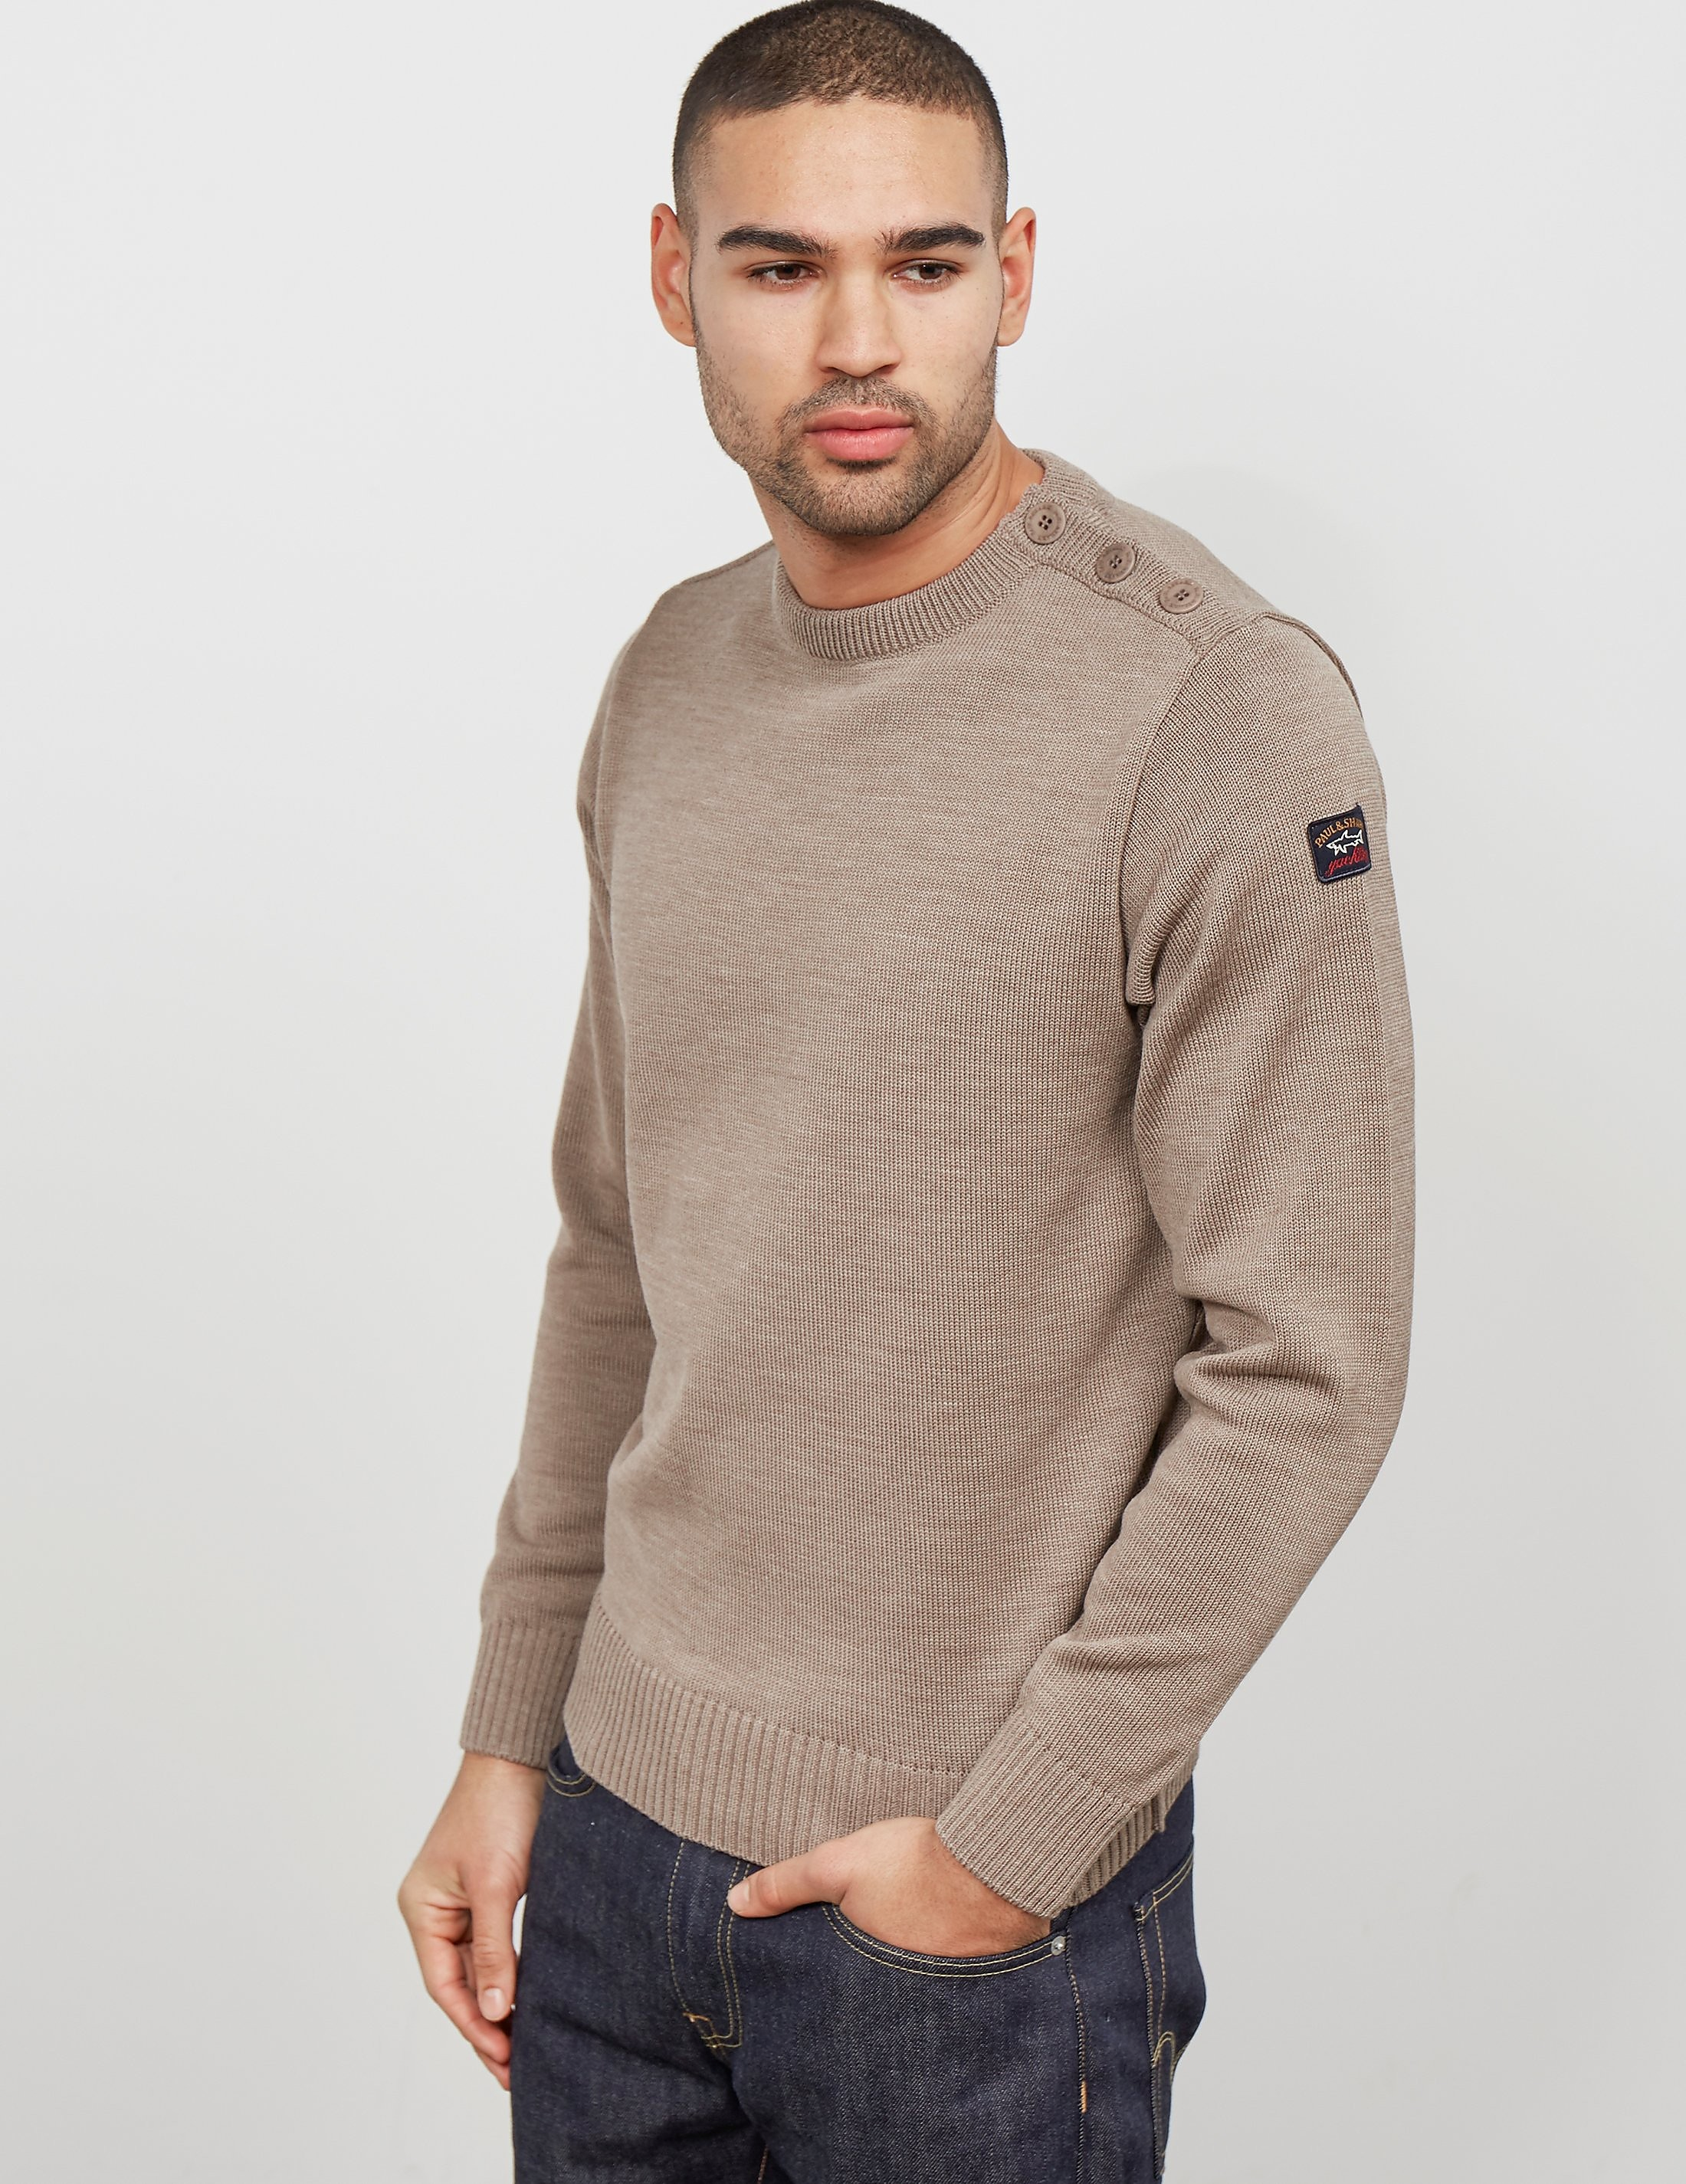 Paul and Shark Button Shoulder Knit - Exclusive